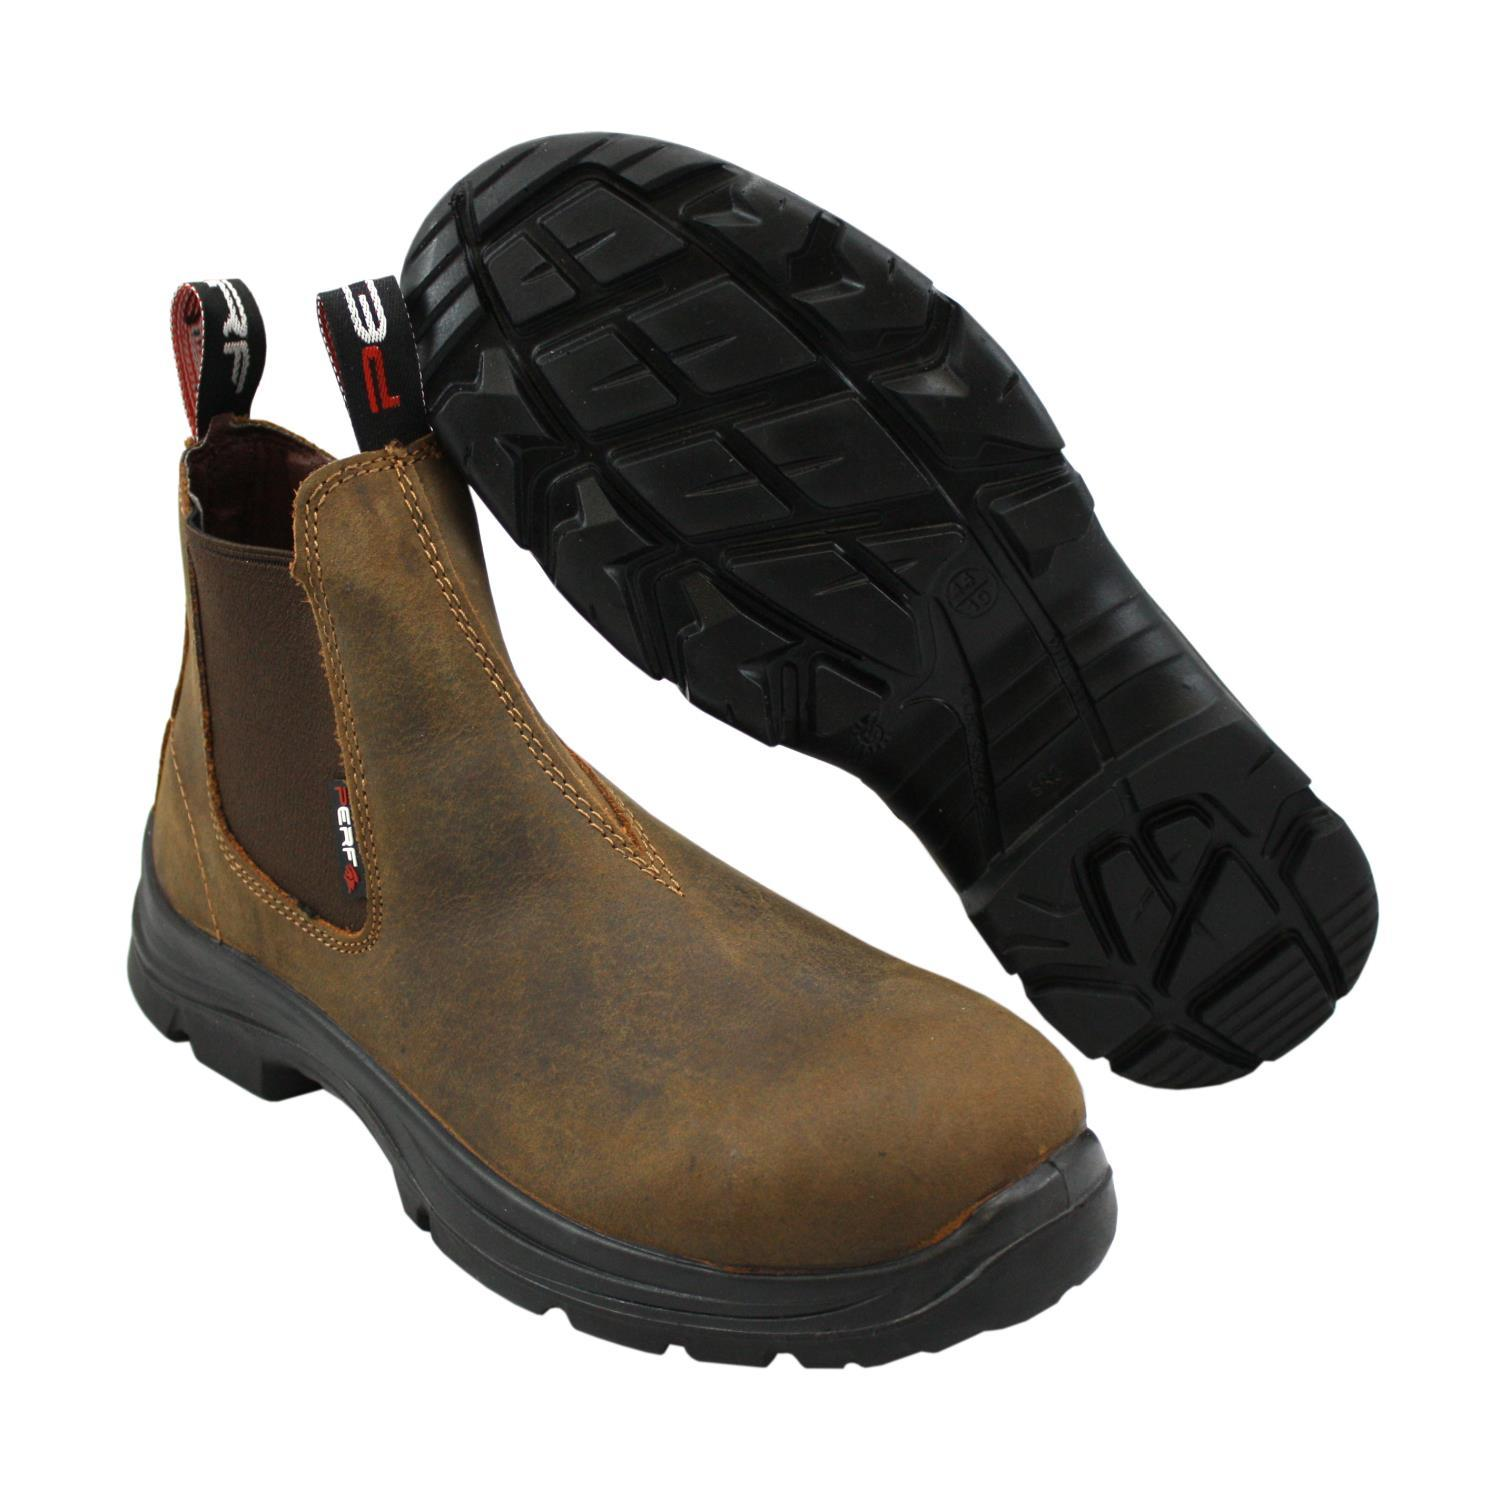 10c99b4dc441 Buy Perf Pro Dealer Safety Slip On Brown Boot from Fane Valley Stores  Agricultural Supplies